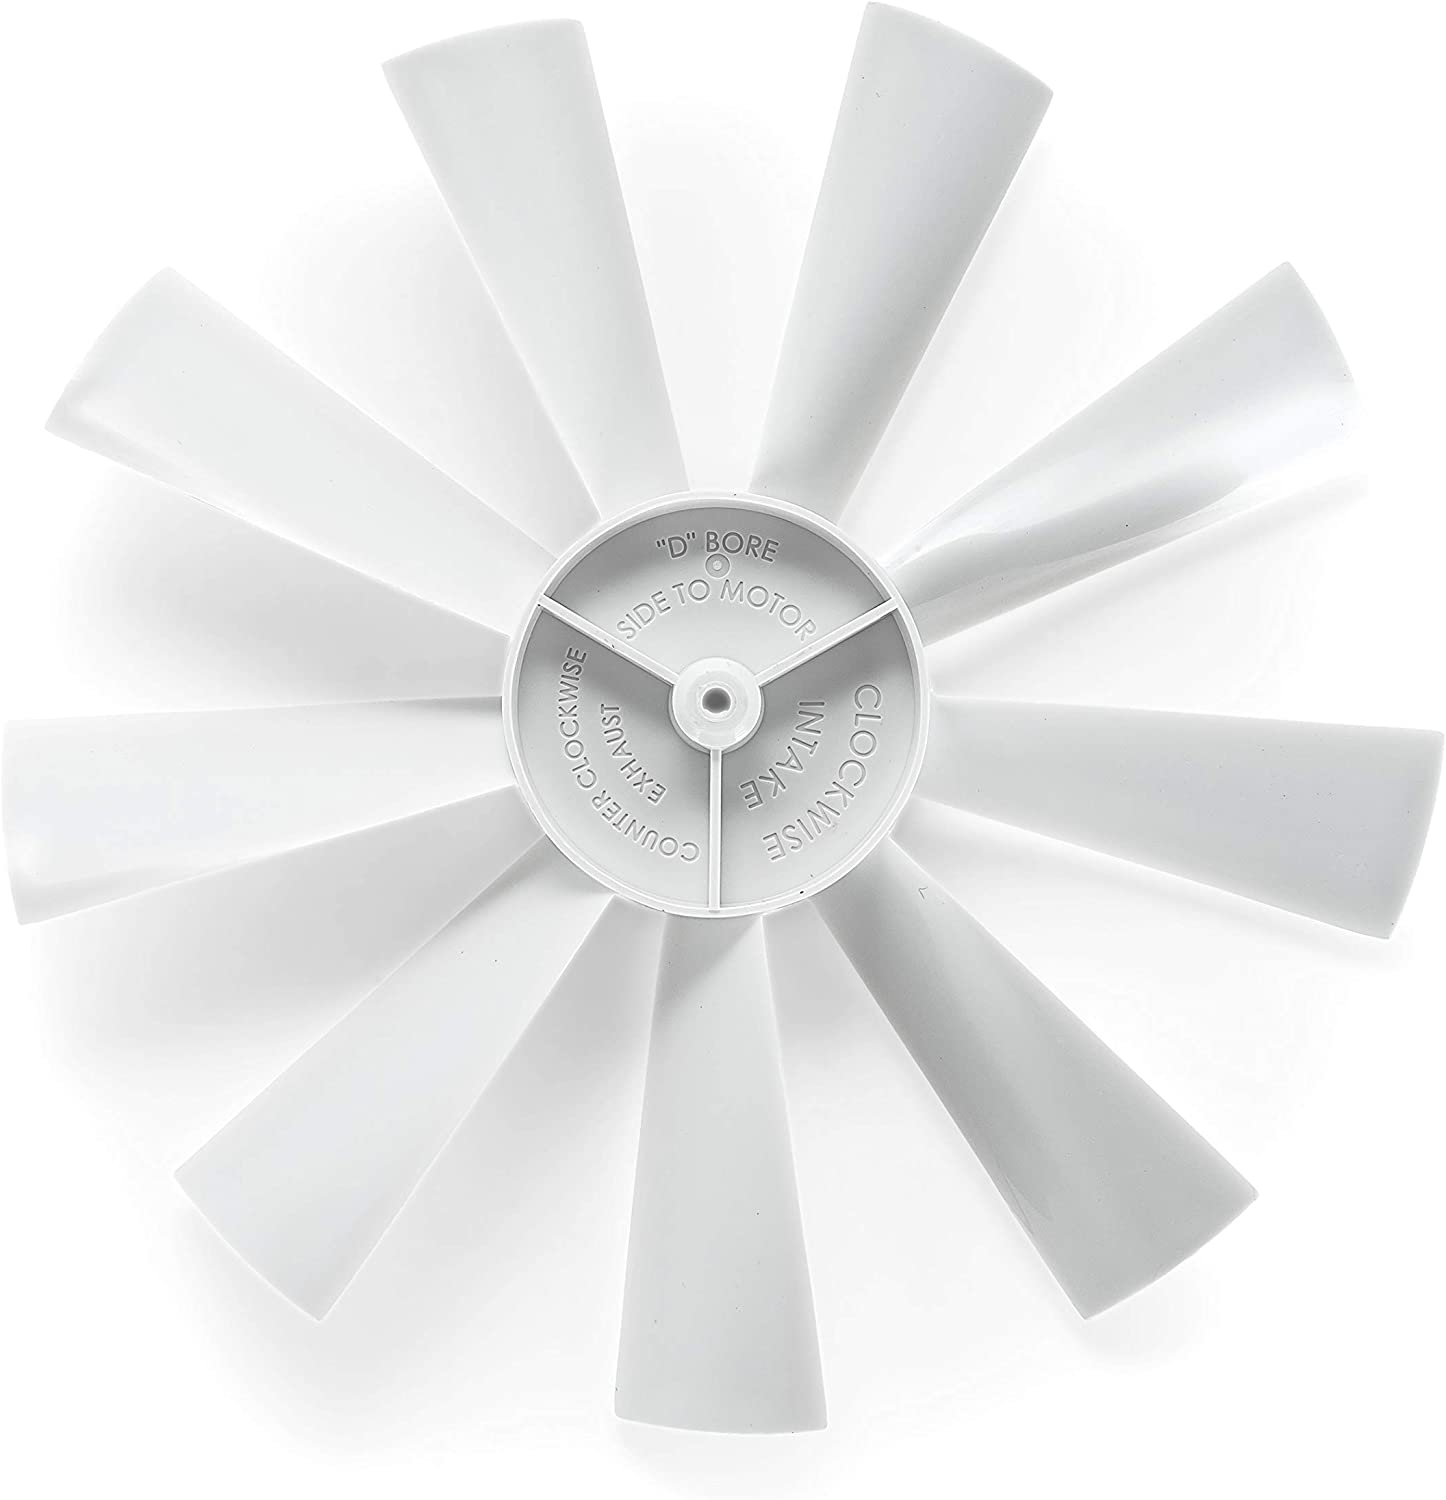 Camco trust 40428 Replacement RV Blade Inverse Vent Fan Overseas parallel import regular item